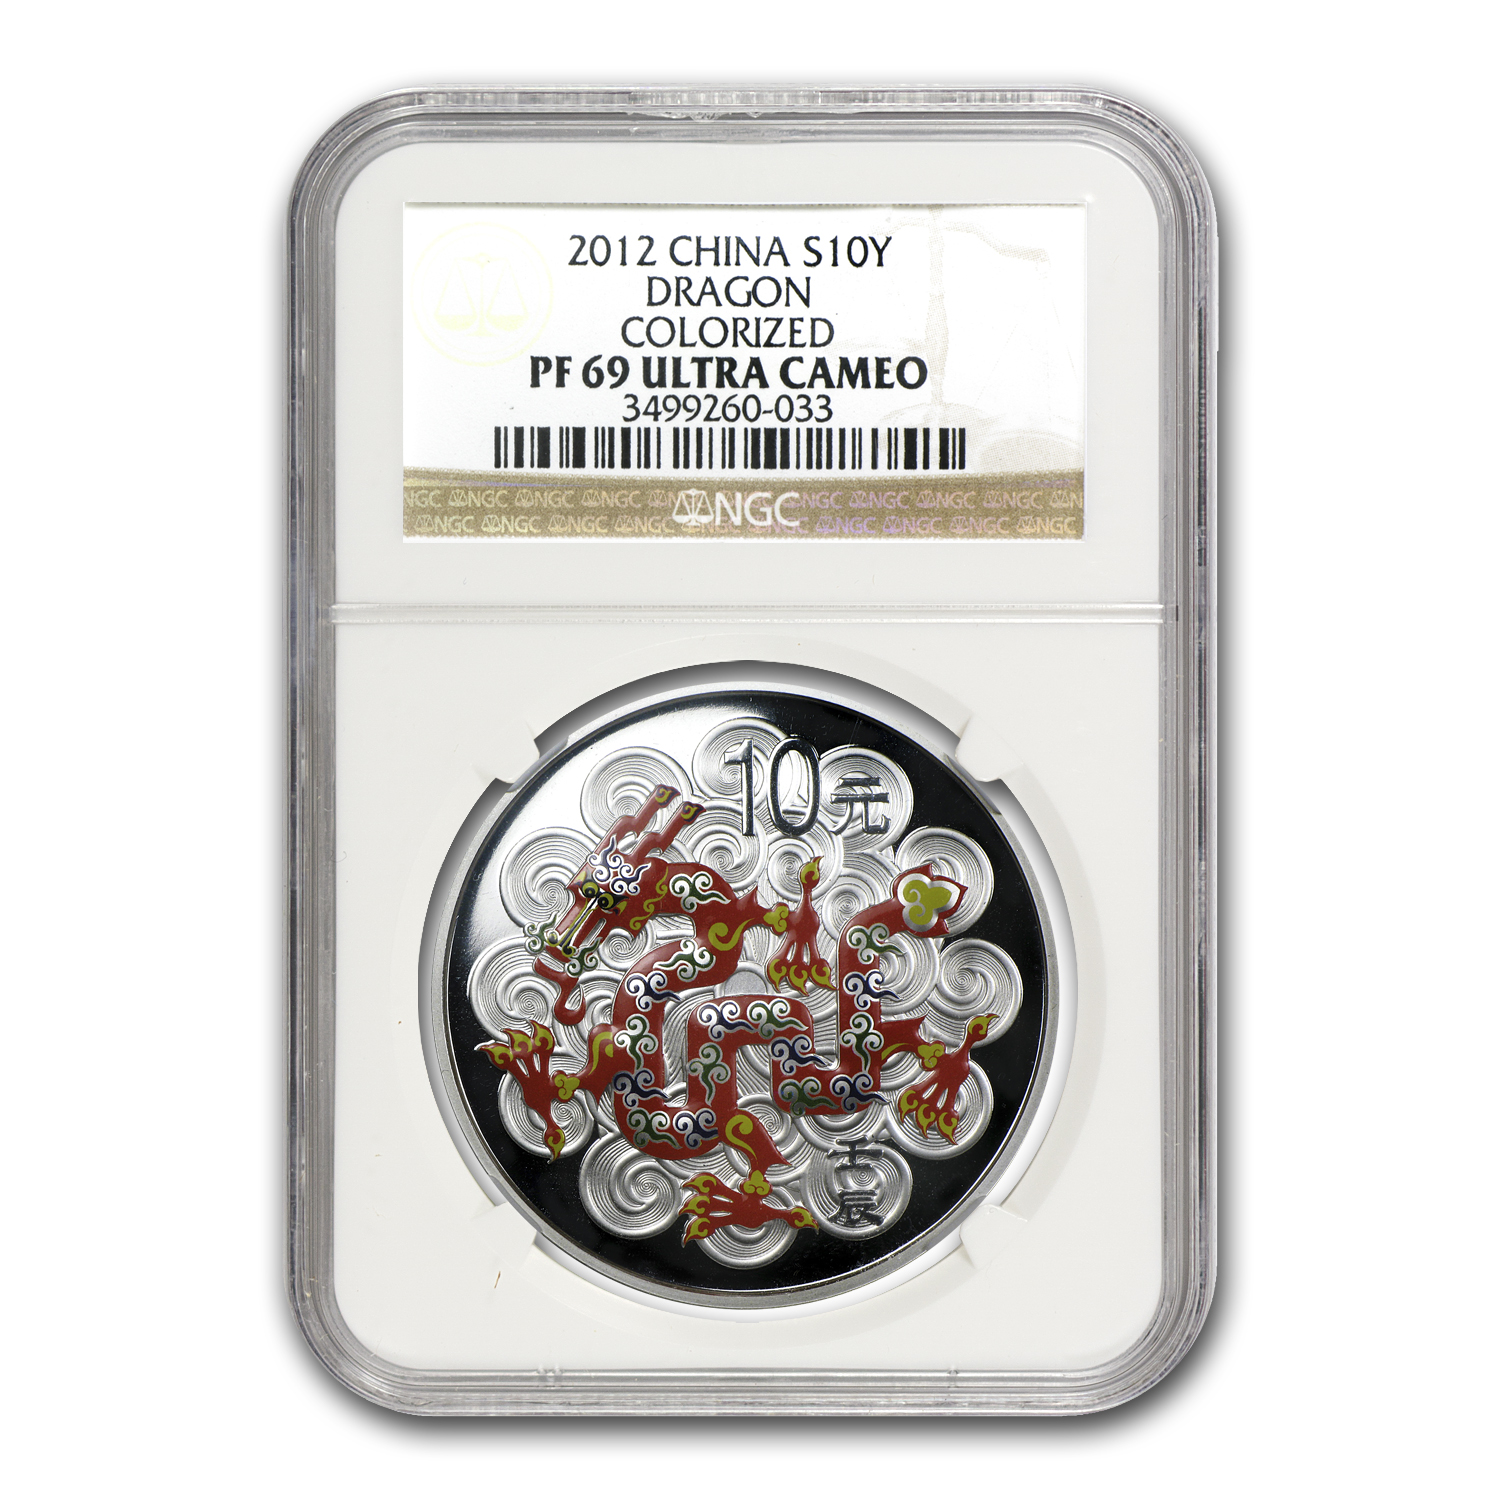 2012 China 1 oz Silver Dragon PF-69 NGC (Colorized)